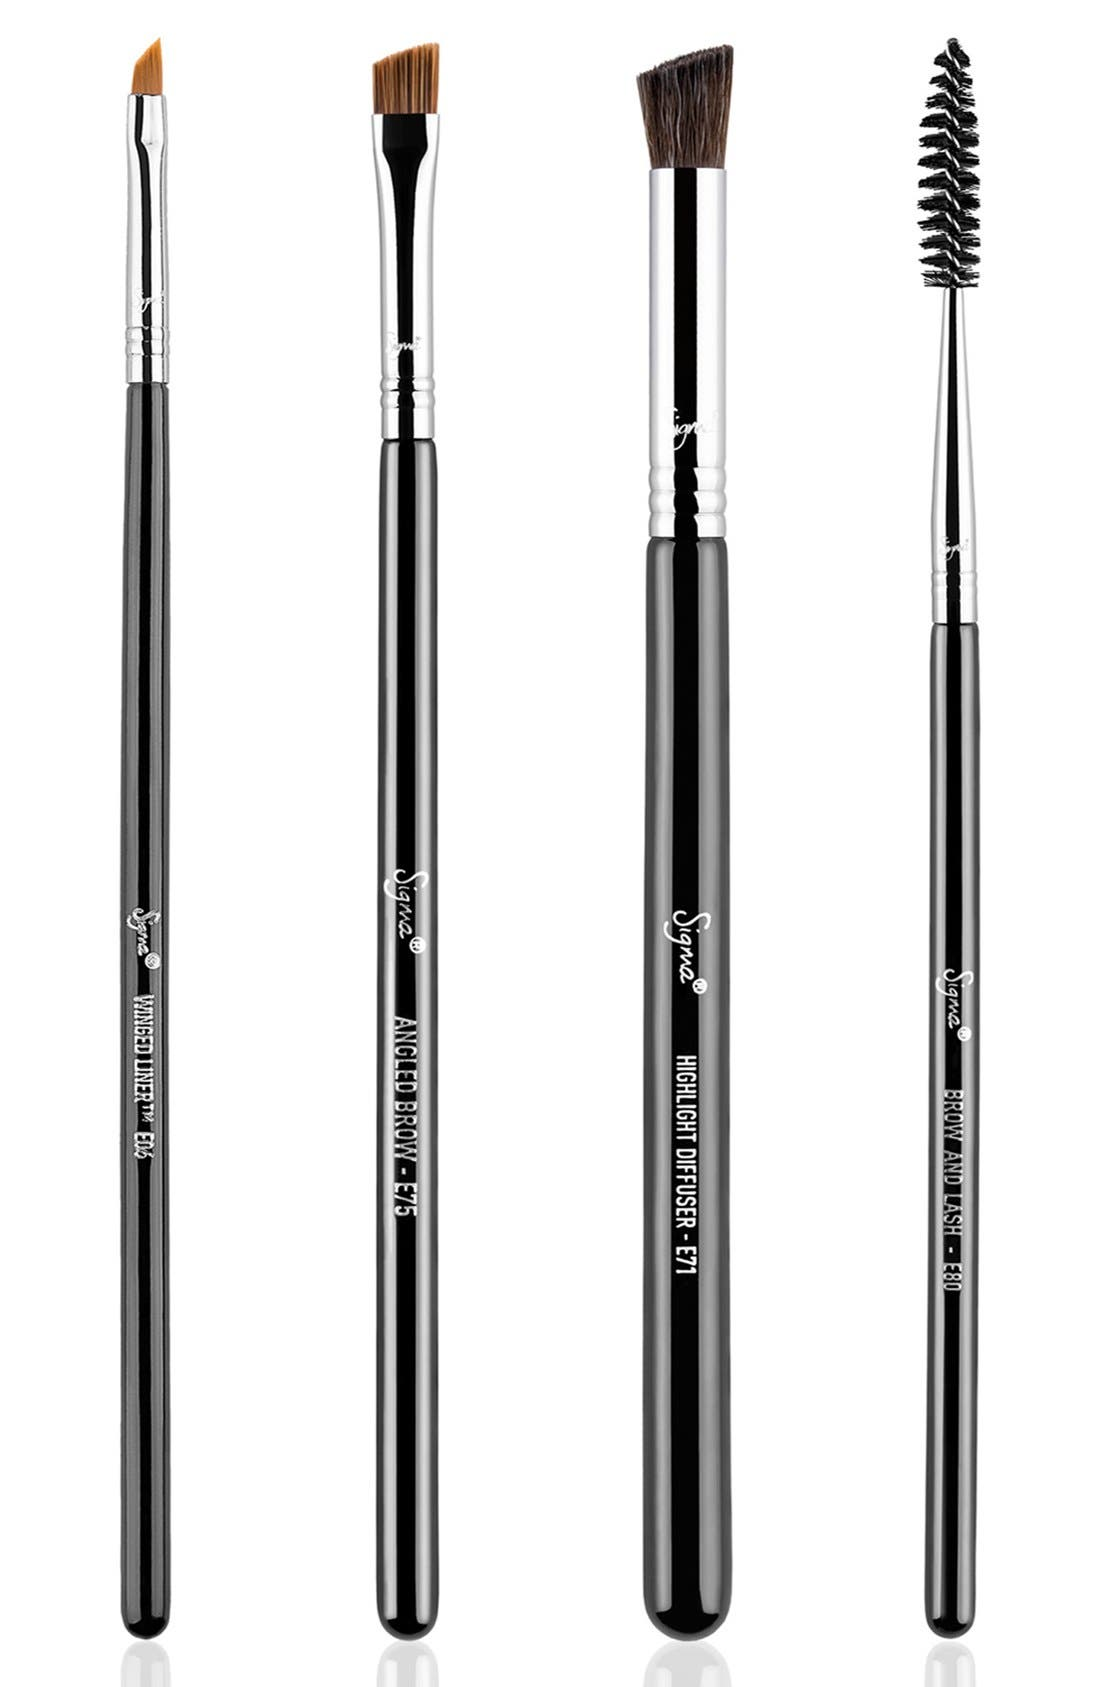 Brow Goals Brush Set,                         Main,                         color, 000